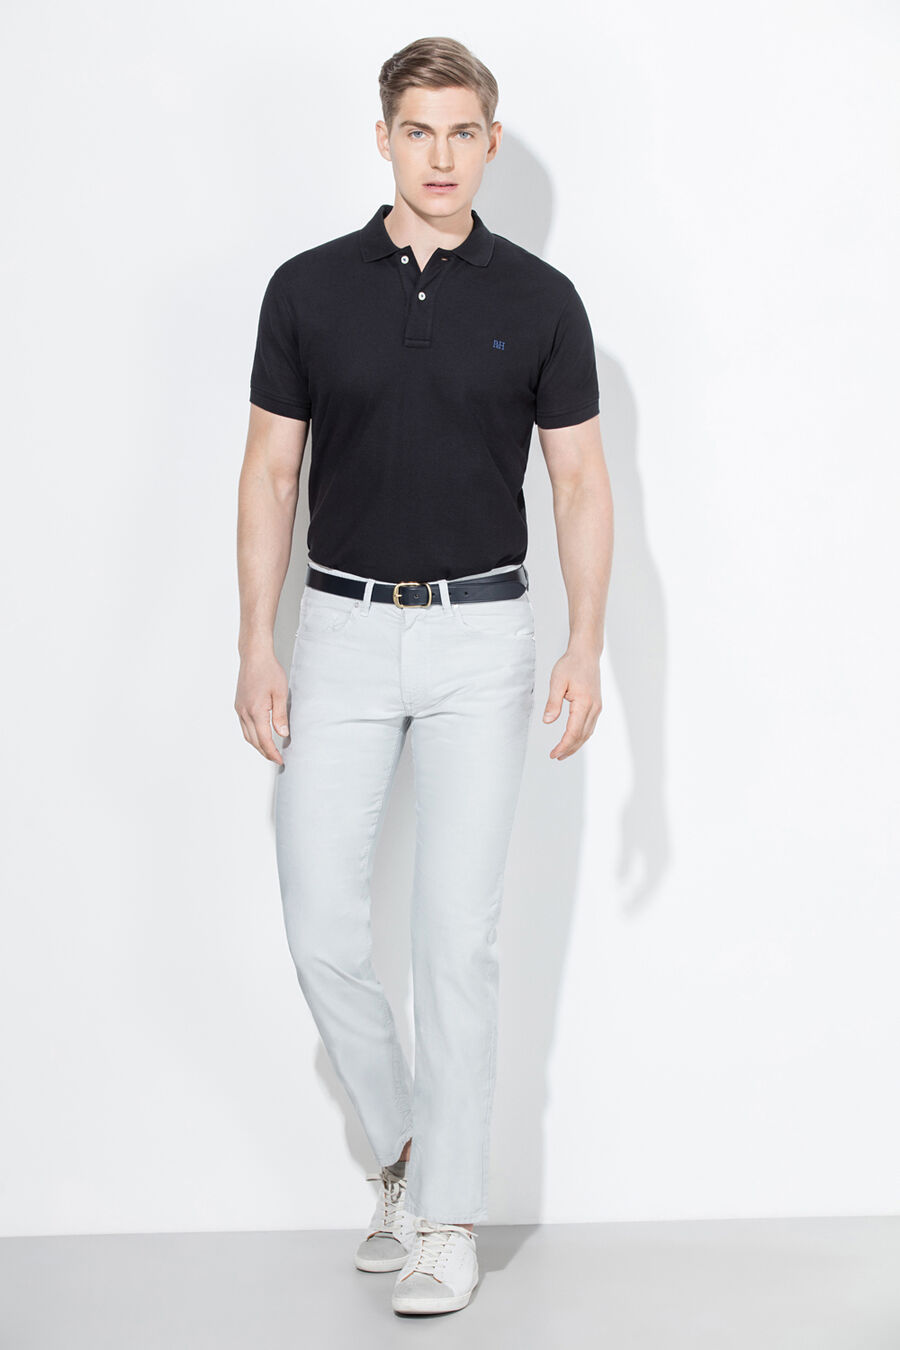 Basic logoed polo